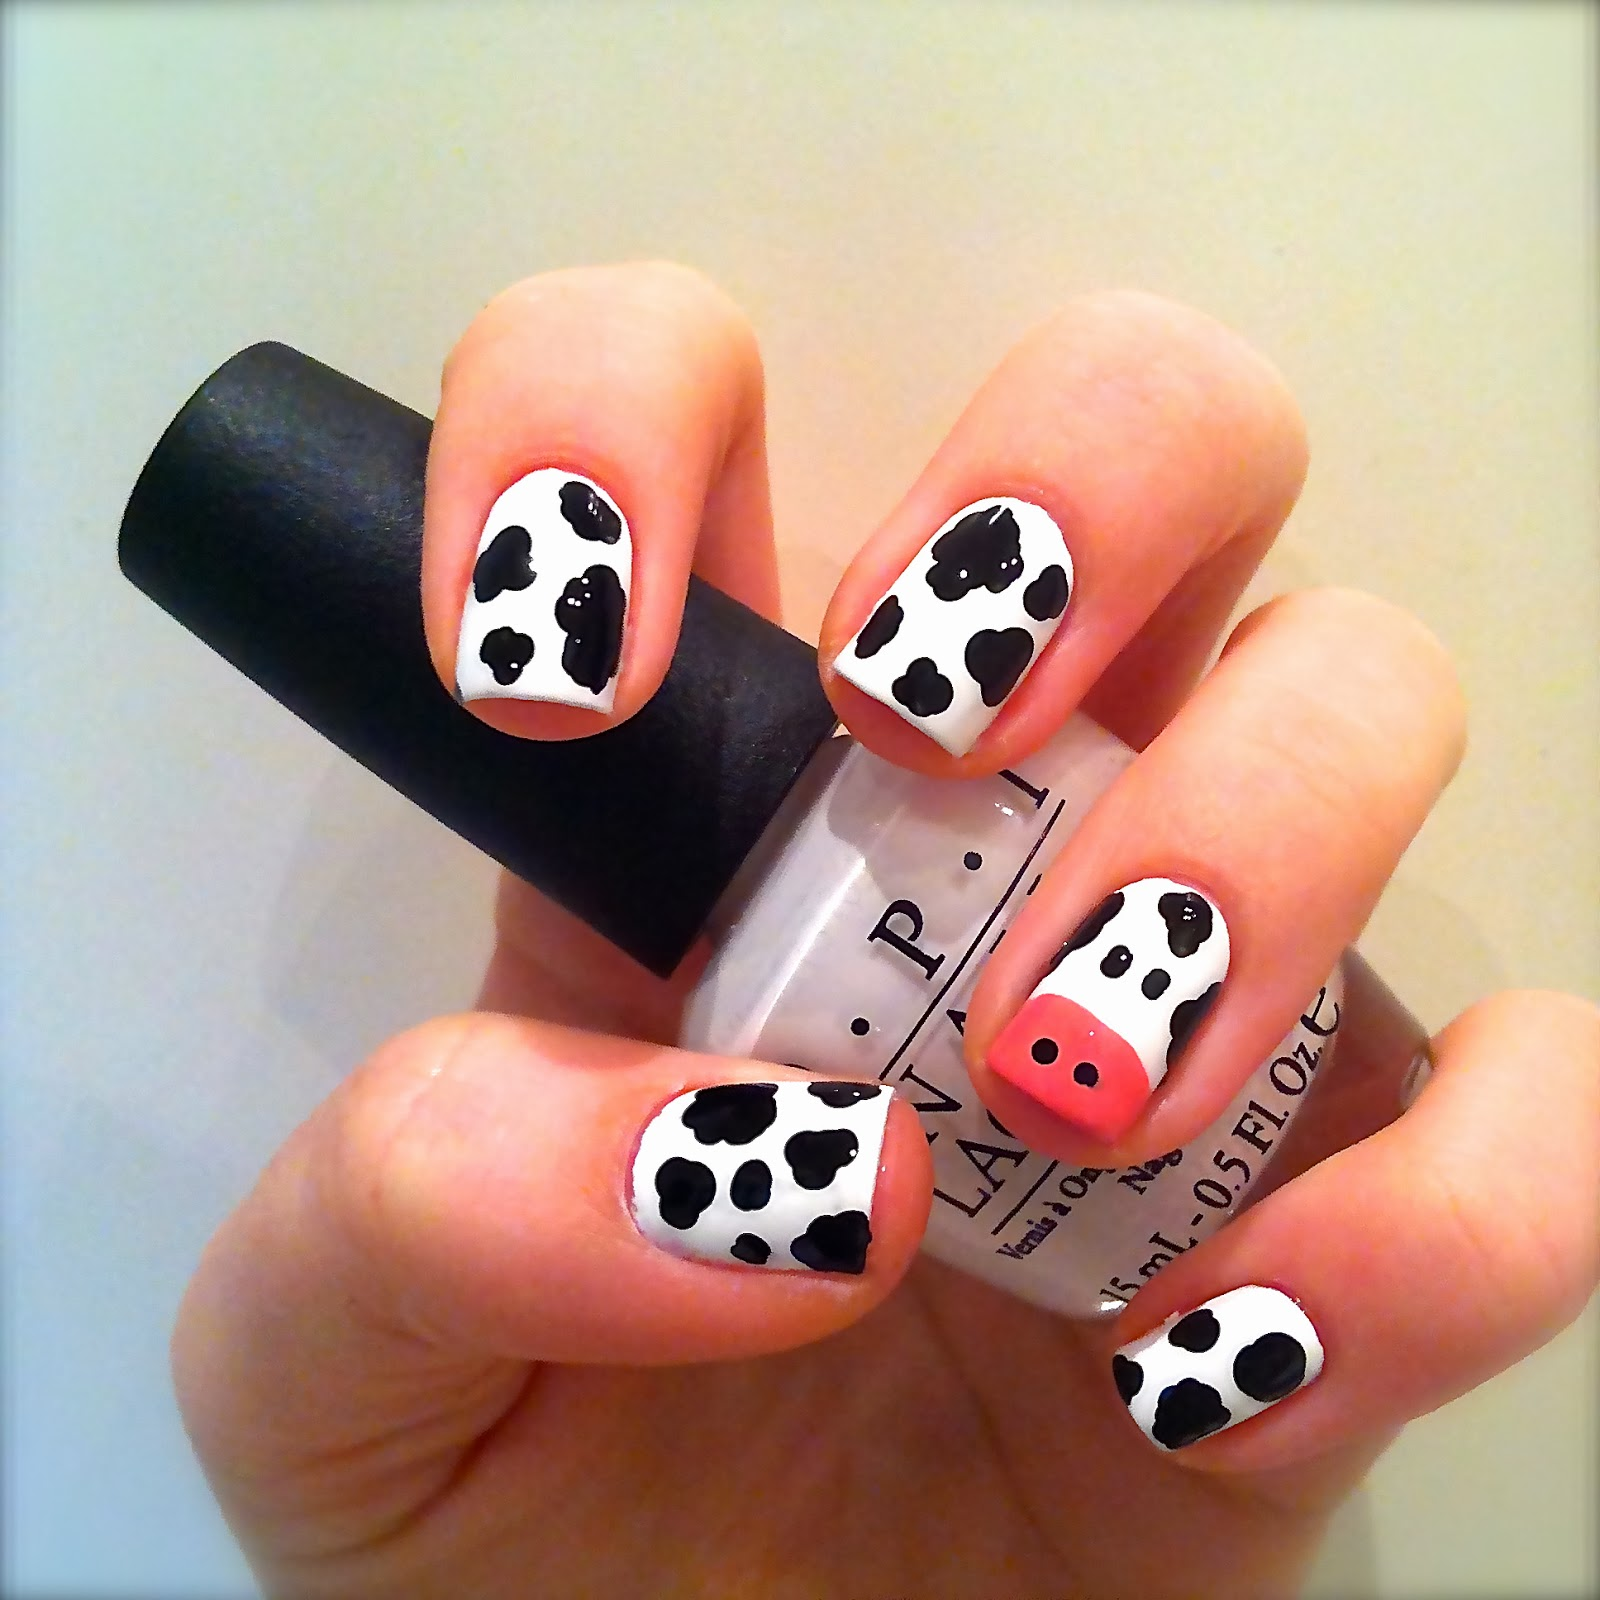 Adorable Nail Designs: 10 Adorable Animal Themed Nail Designs